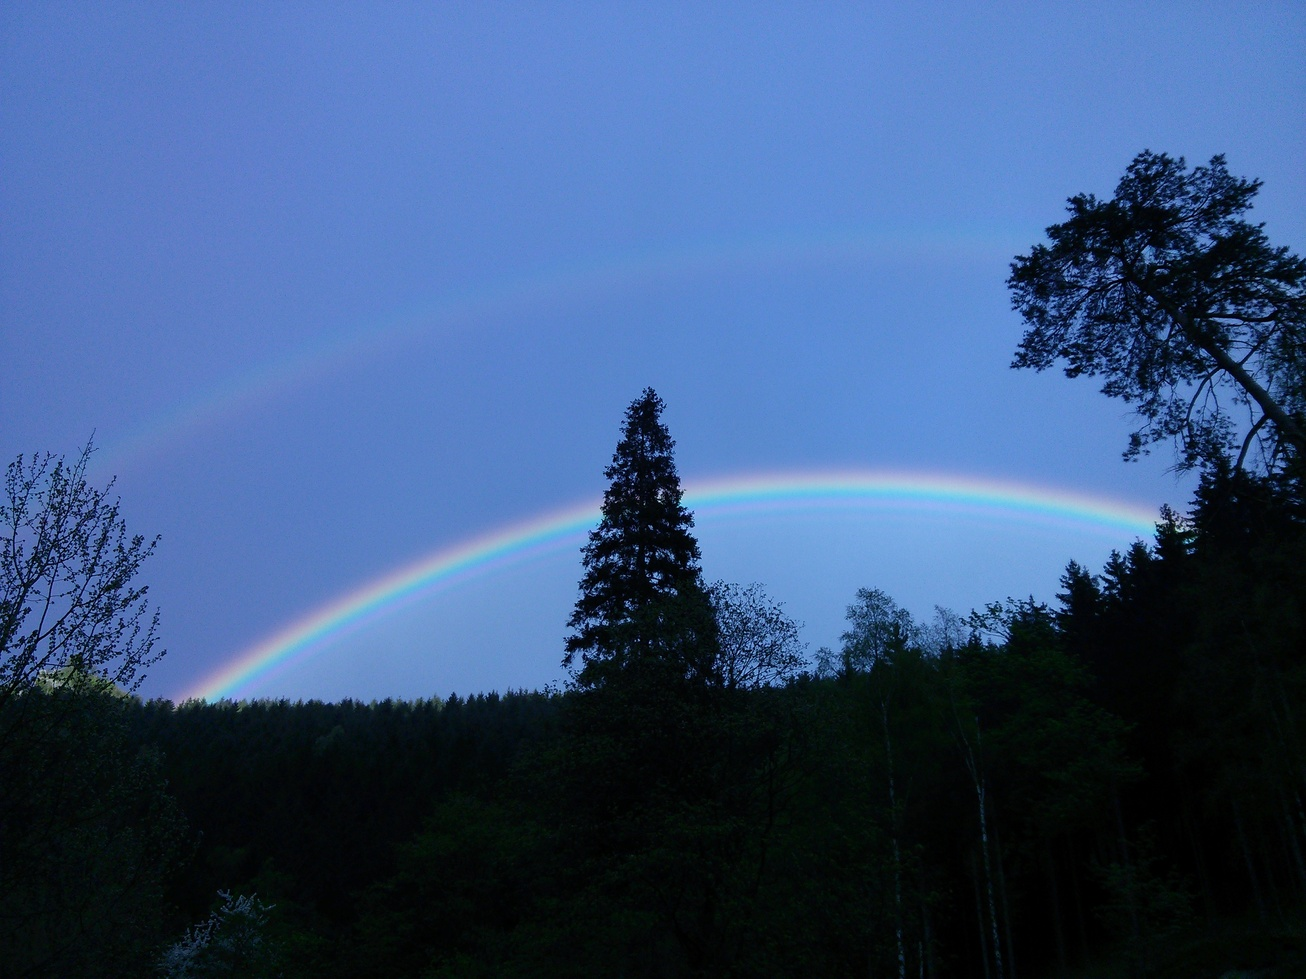 one of the finest double rainbows I ever saw in my life